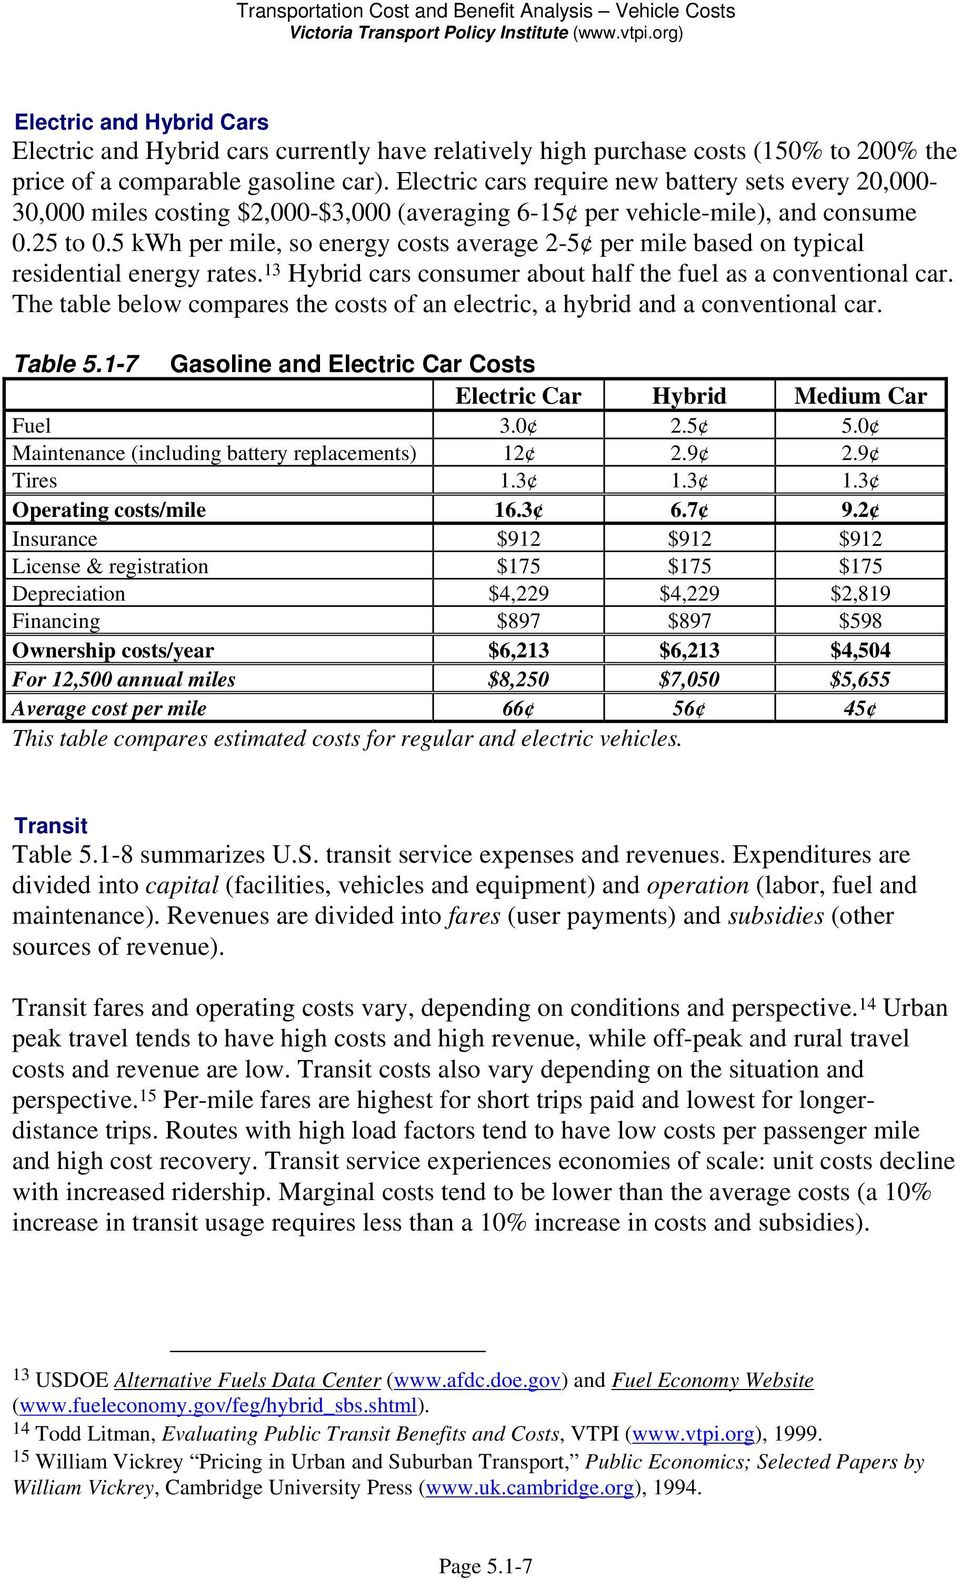 Transportation Cost and Benefit Analysis Vehicle Costs